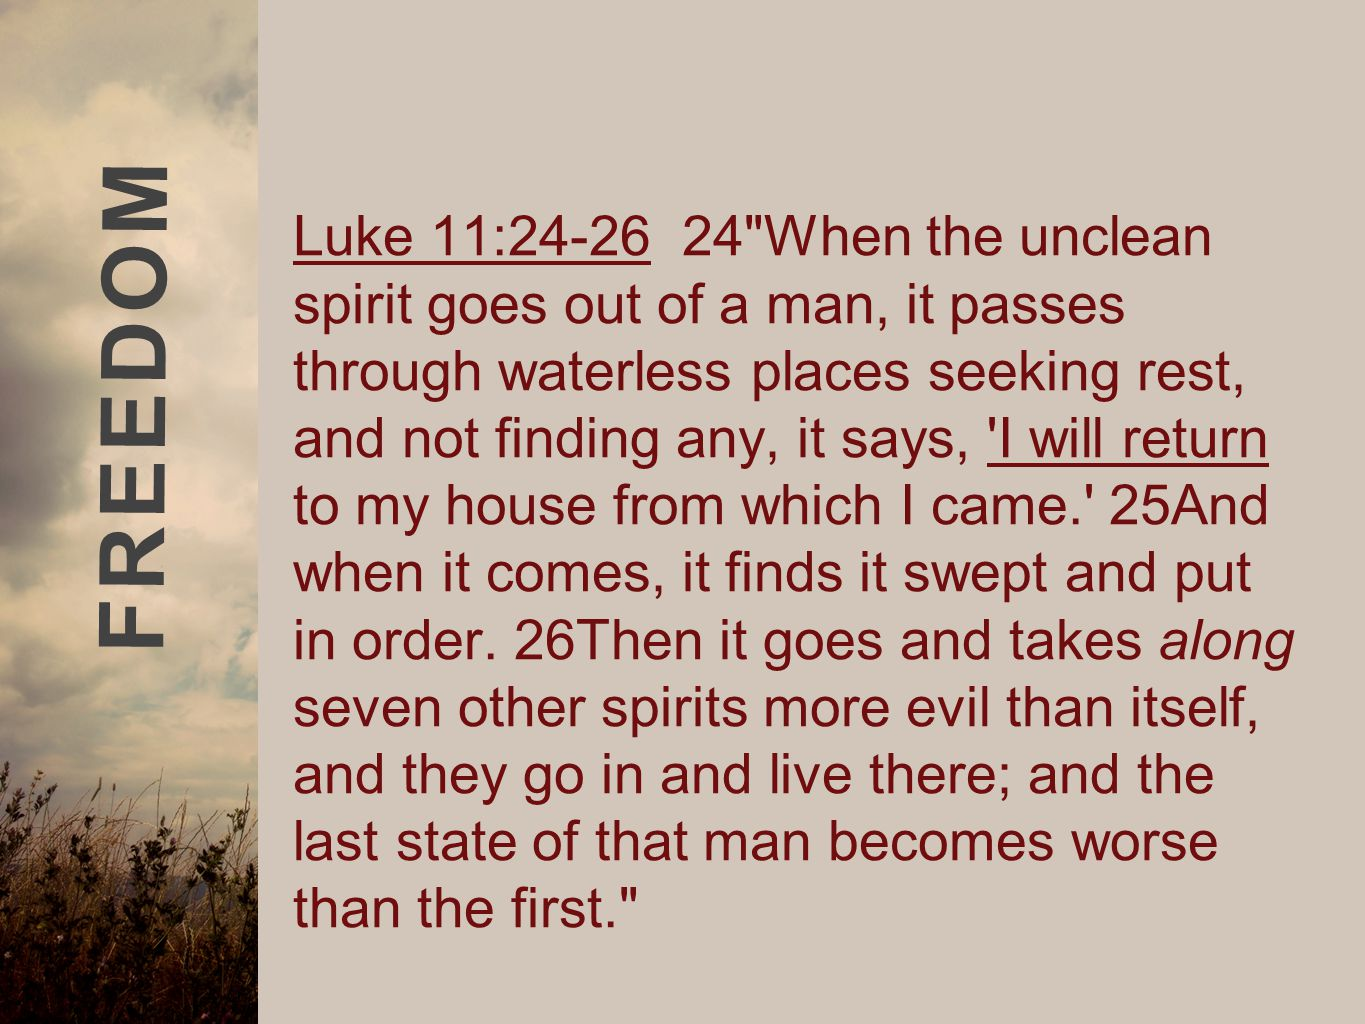 FREEDOM Luke 11:24-26 24 When the unclean spirit goes out of a man, it passes through waterless places seeking rest, and not finding any, it says, I will return to my house from which I came. 25And when it comes, it finds it swept and put in order.